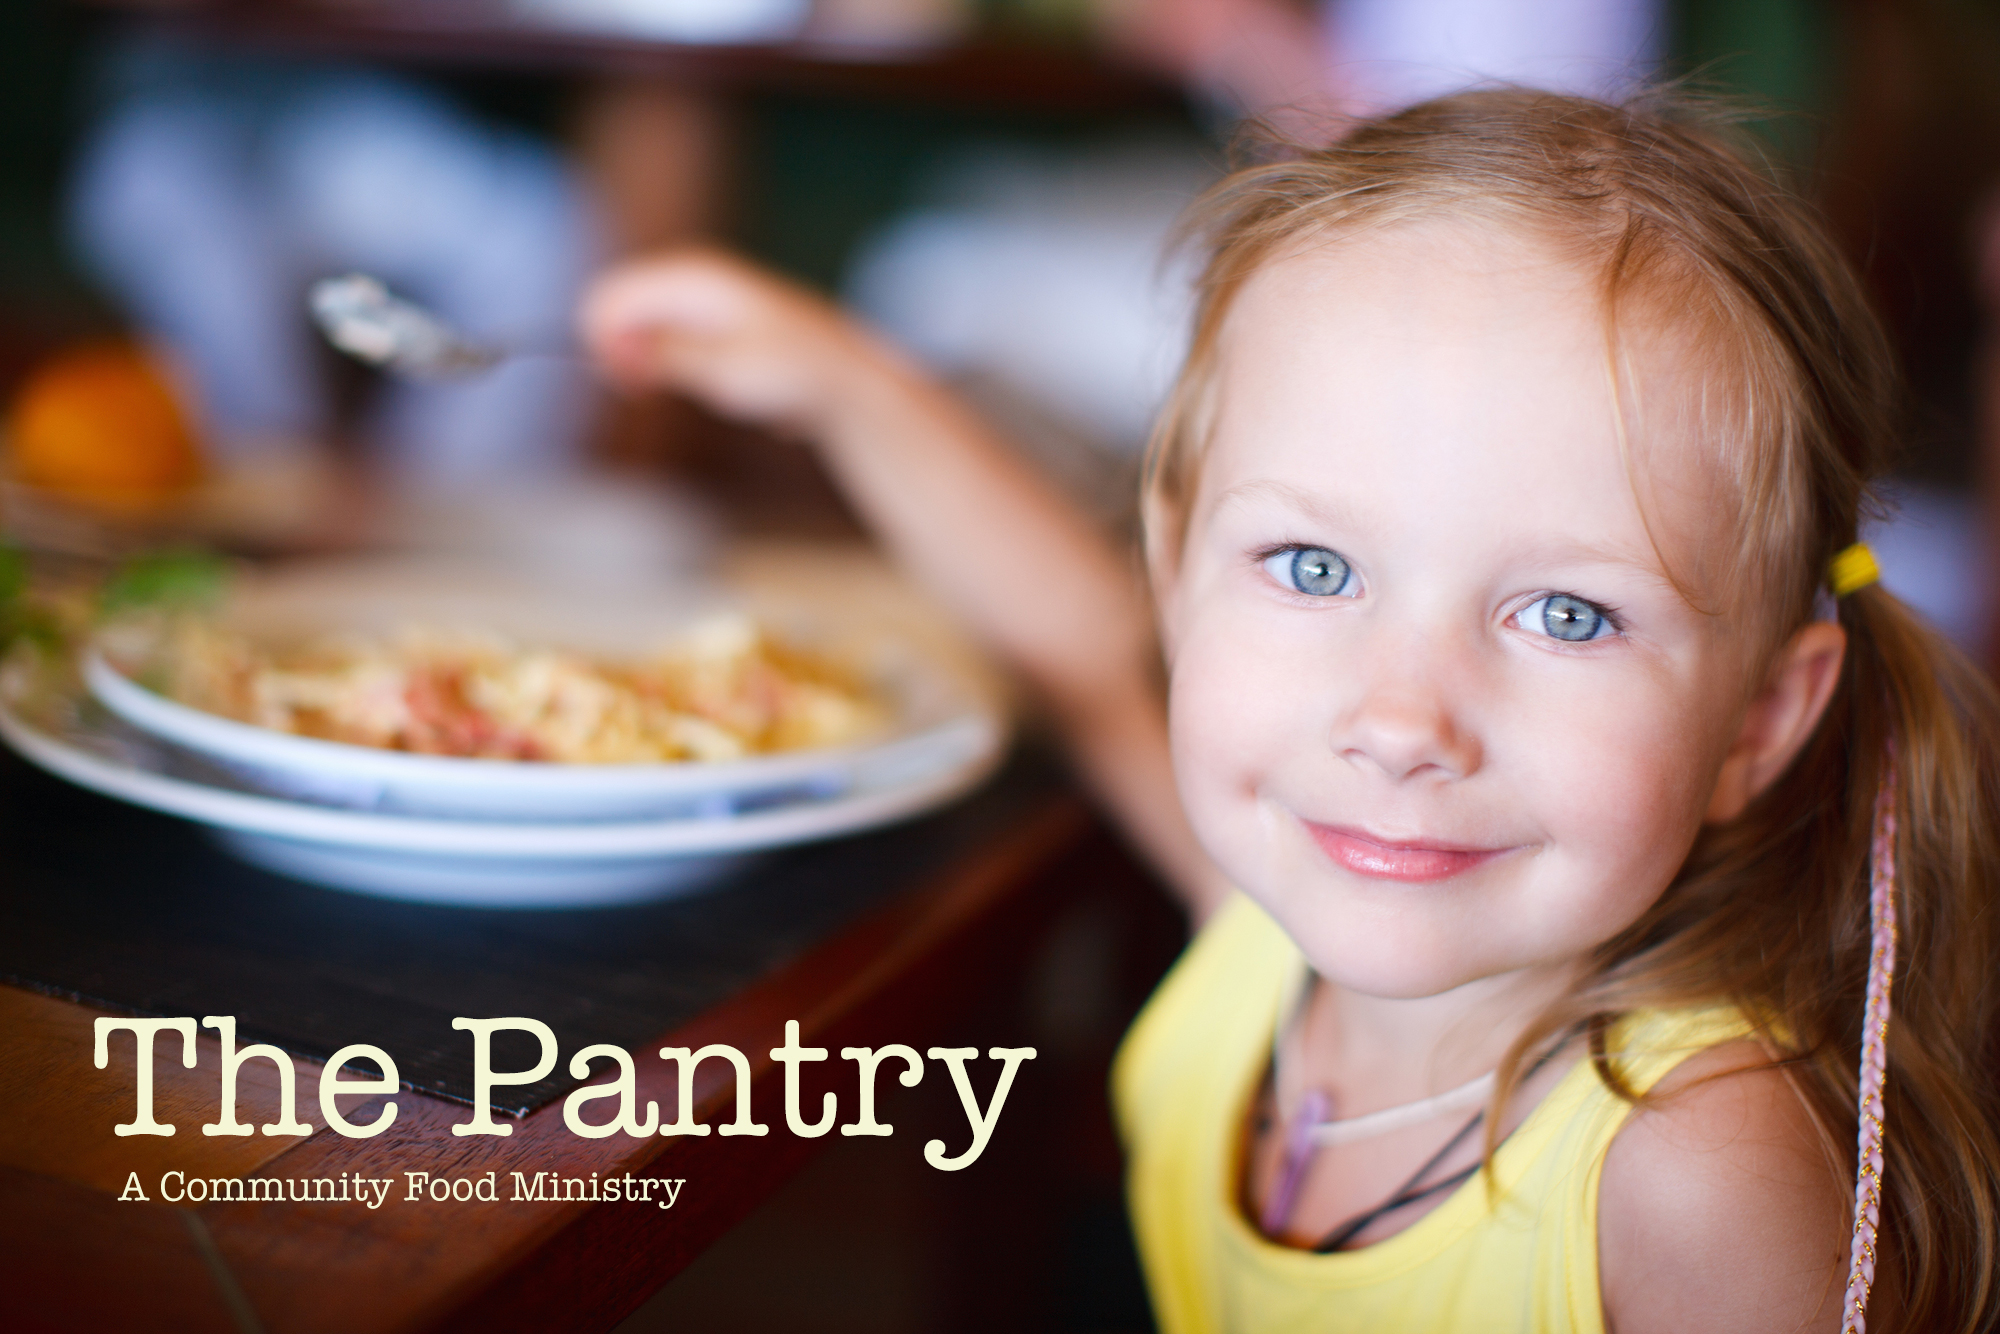 The Pantry partners with Ebay